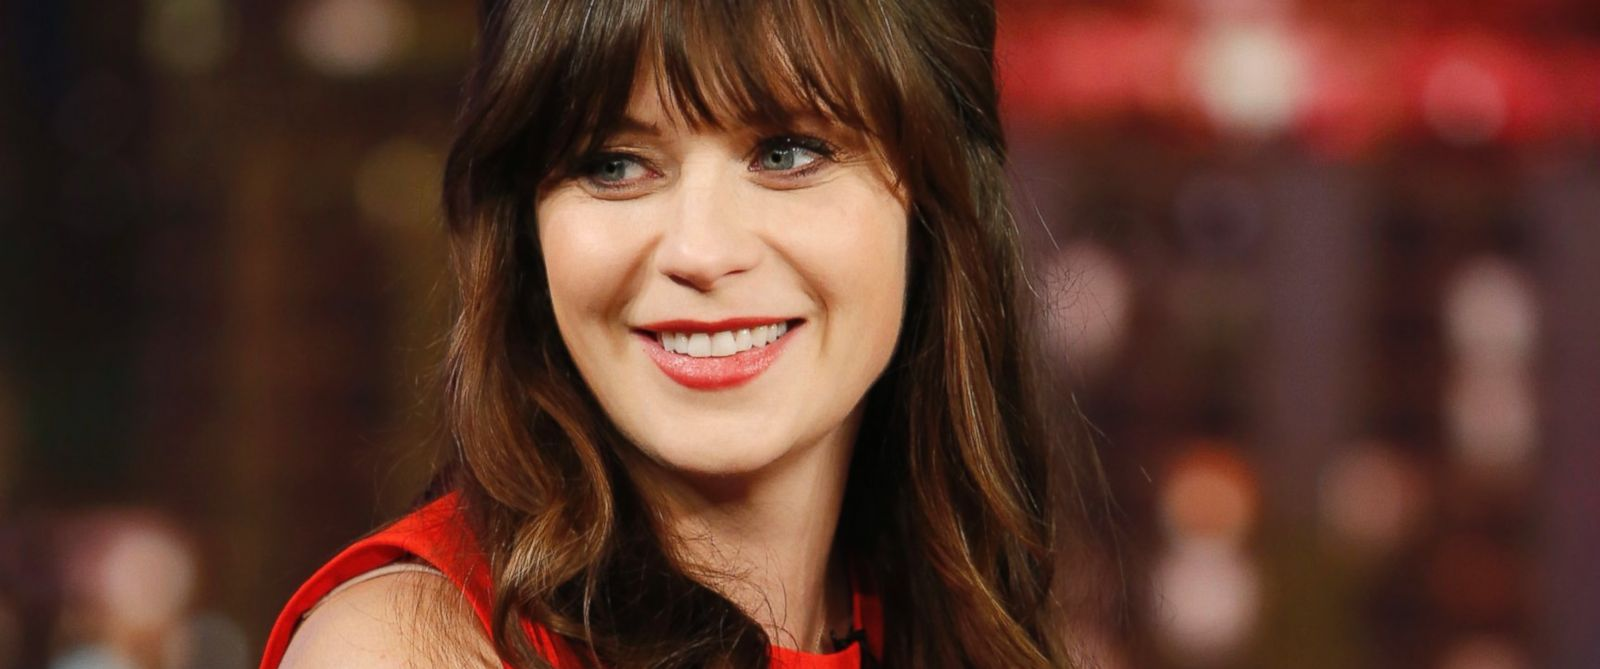 zooey deschanel sherlockzooey deschanel hello, zooey deschanel hello скачать, zooey deschanel 2017, zooey deschanel 2016, zooey deschanel sherlock, zooey deschanel gif, zooey deschanel sugar town, zooey deschanel katy perry, zooey deschanel hello перевод, zooey deschanel vk, zooey deschanel sugar town перевод, zooey deschanel and joseph gordon-levitt, zooey deschanel википедия, zooey deschanel фото, zooey deschanel фильмография, zooey deschanel hello минус, zooey deschanel wiki, zooey deschanel dance, zooey deschanel ukulele, zooey deschanel yes man перевод